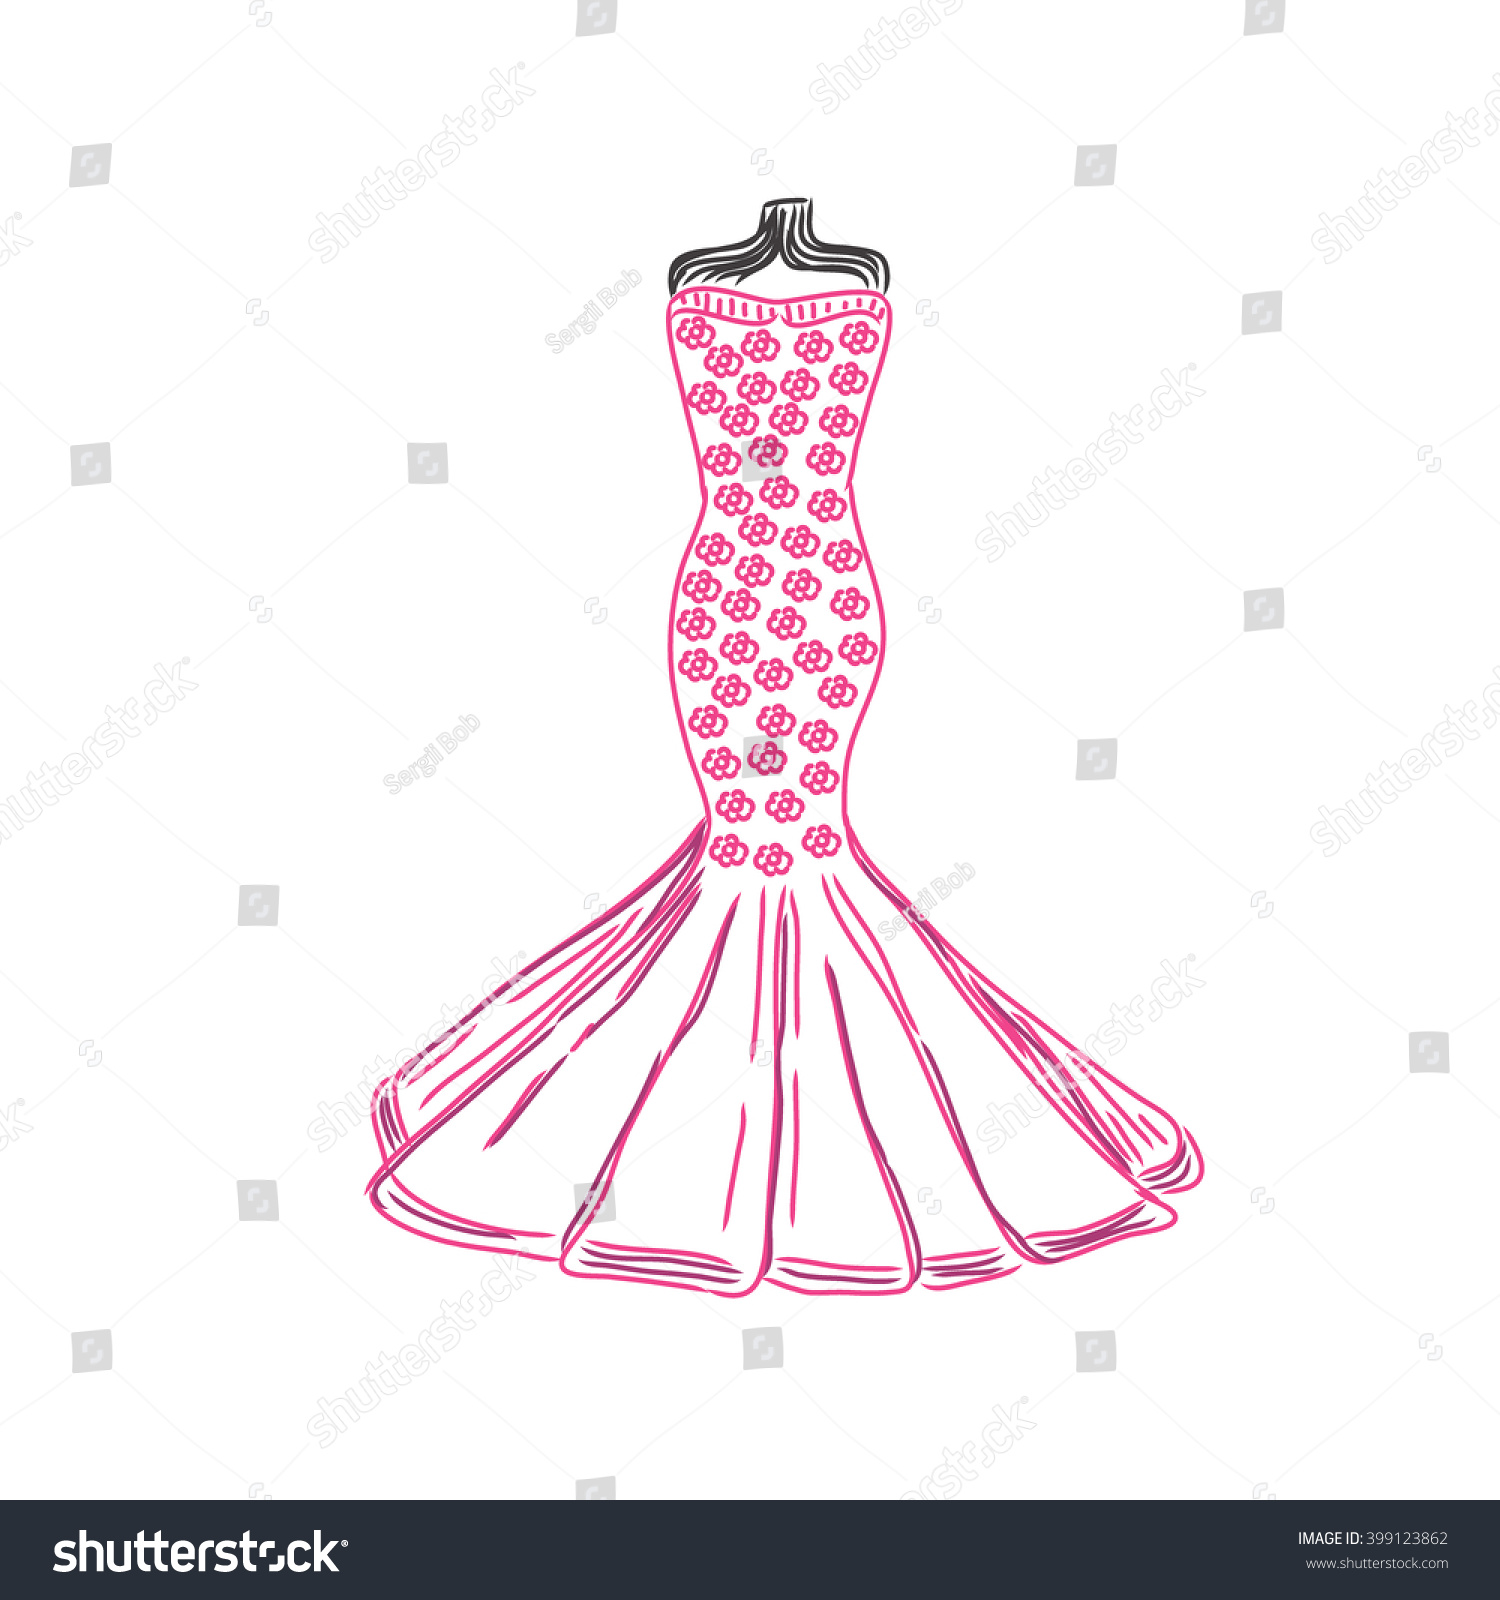 Dress Sketch Vector Illustration Stock Vector 399123862 - Shutterstock